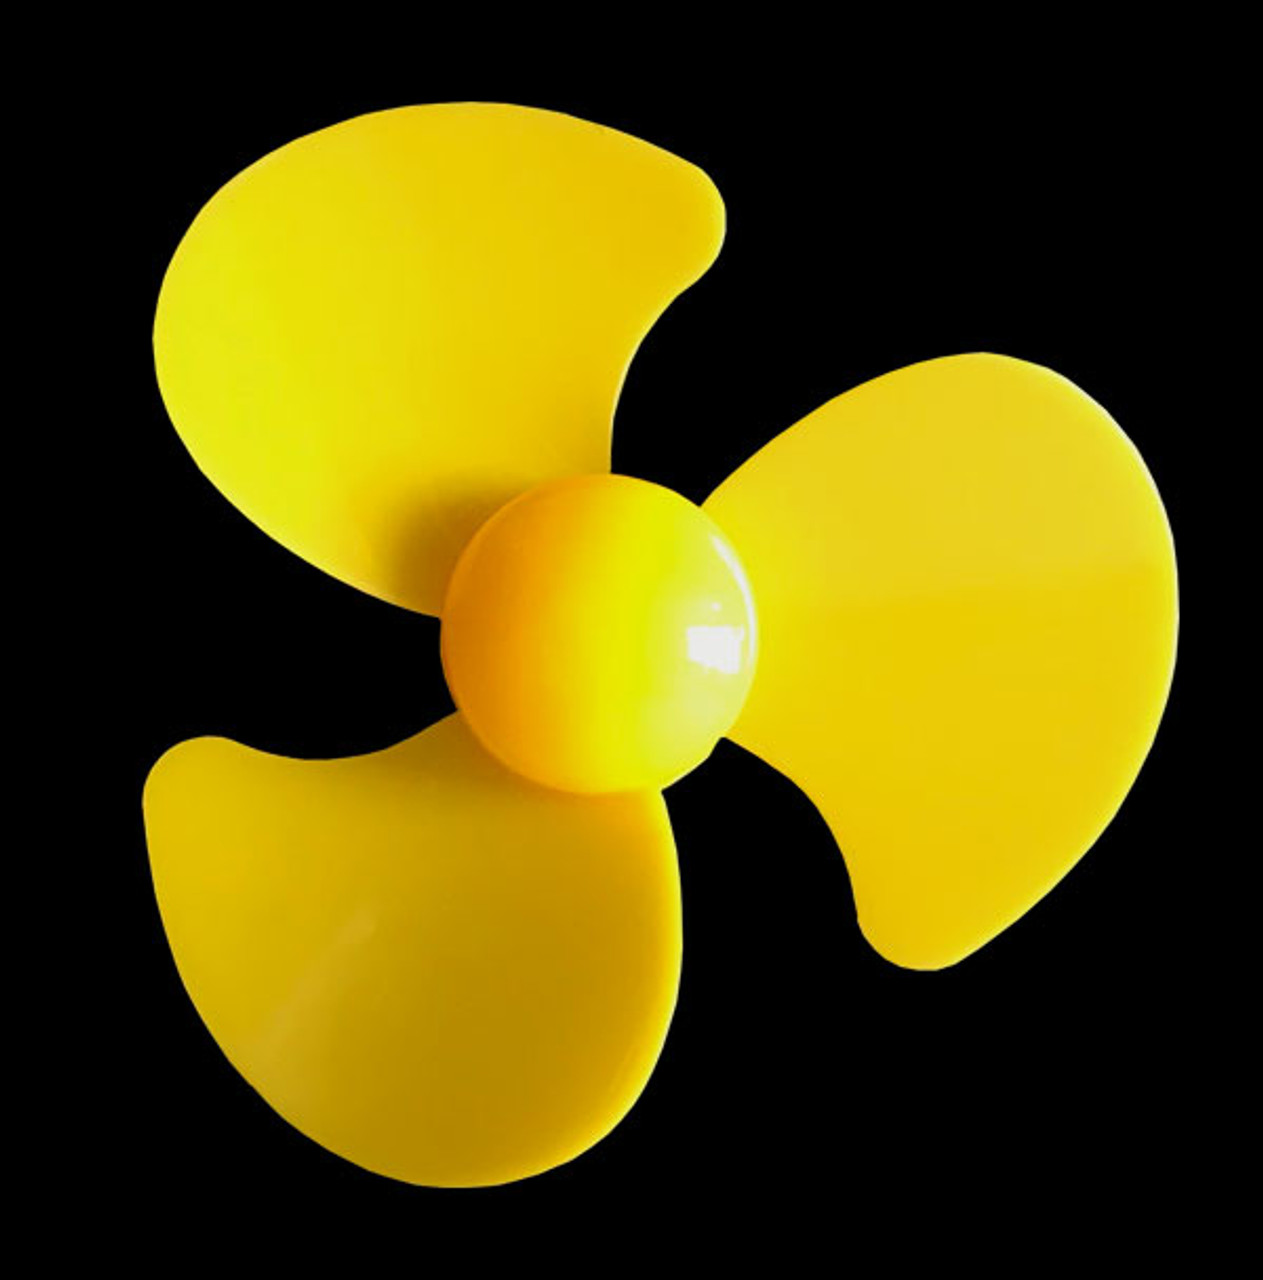 Fan blade propeller with 3 wide blade and outer diameter of 90 mm